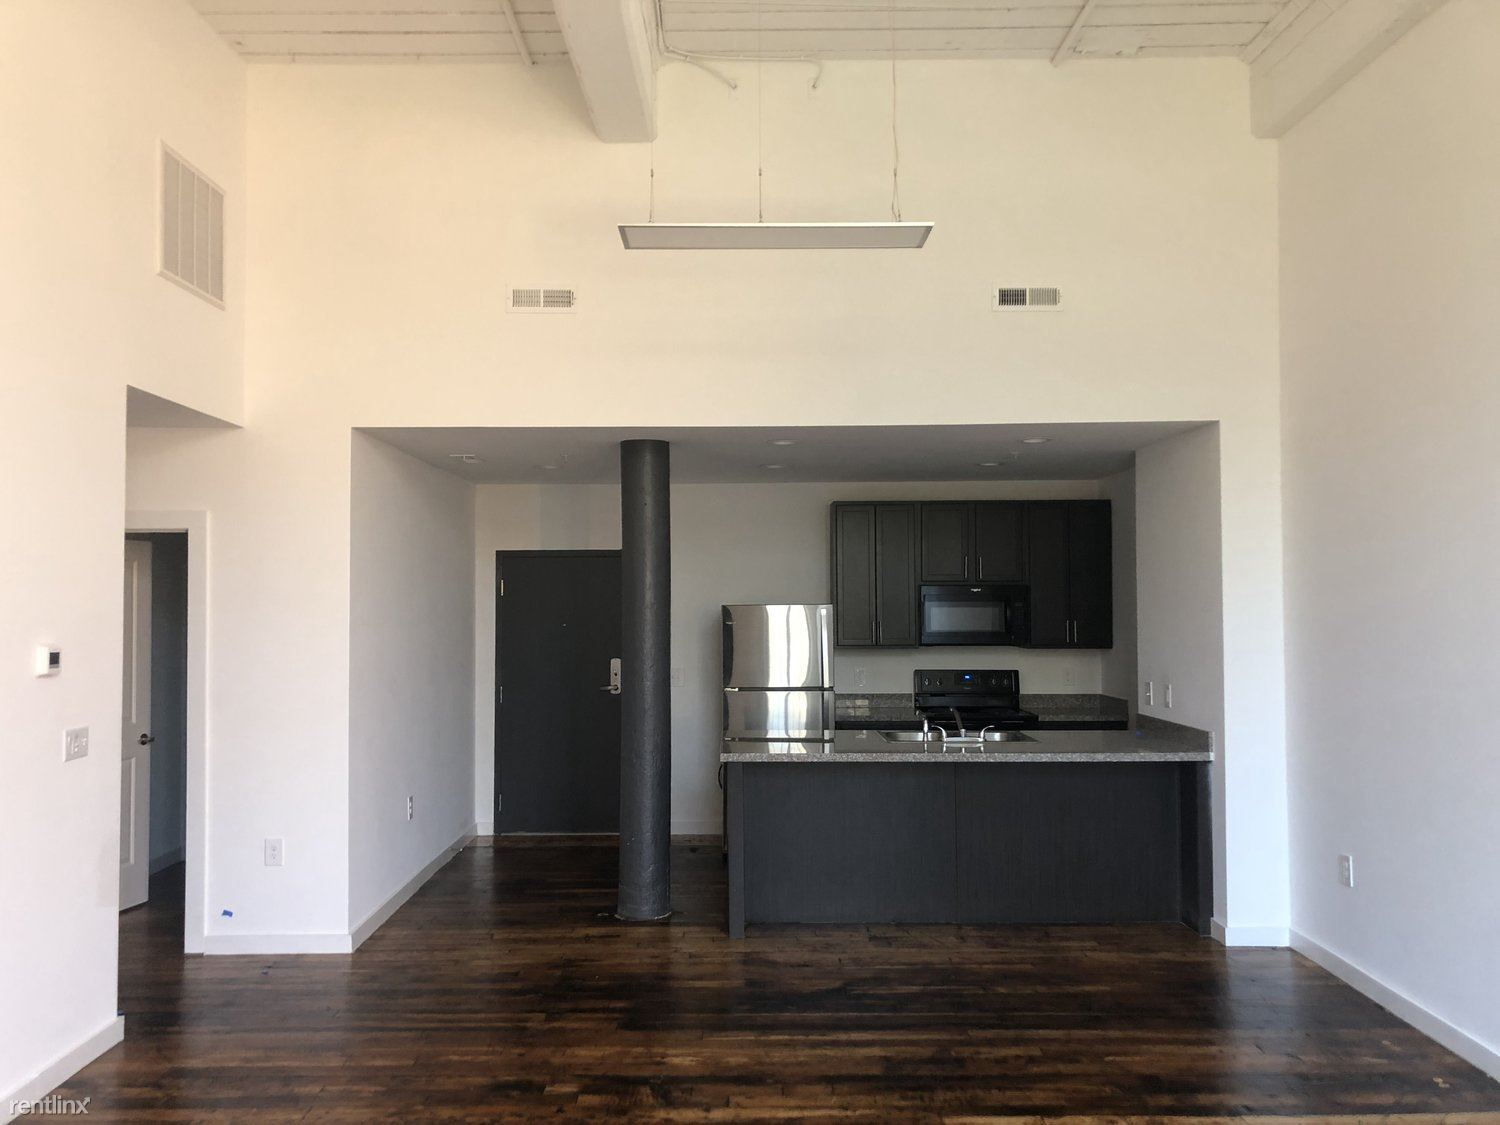 240 4th St - 1265USD / month